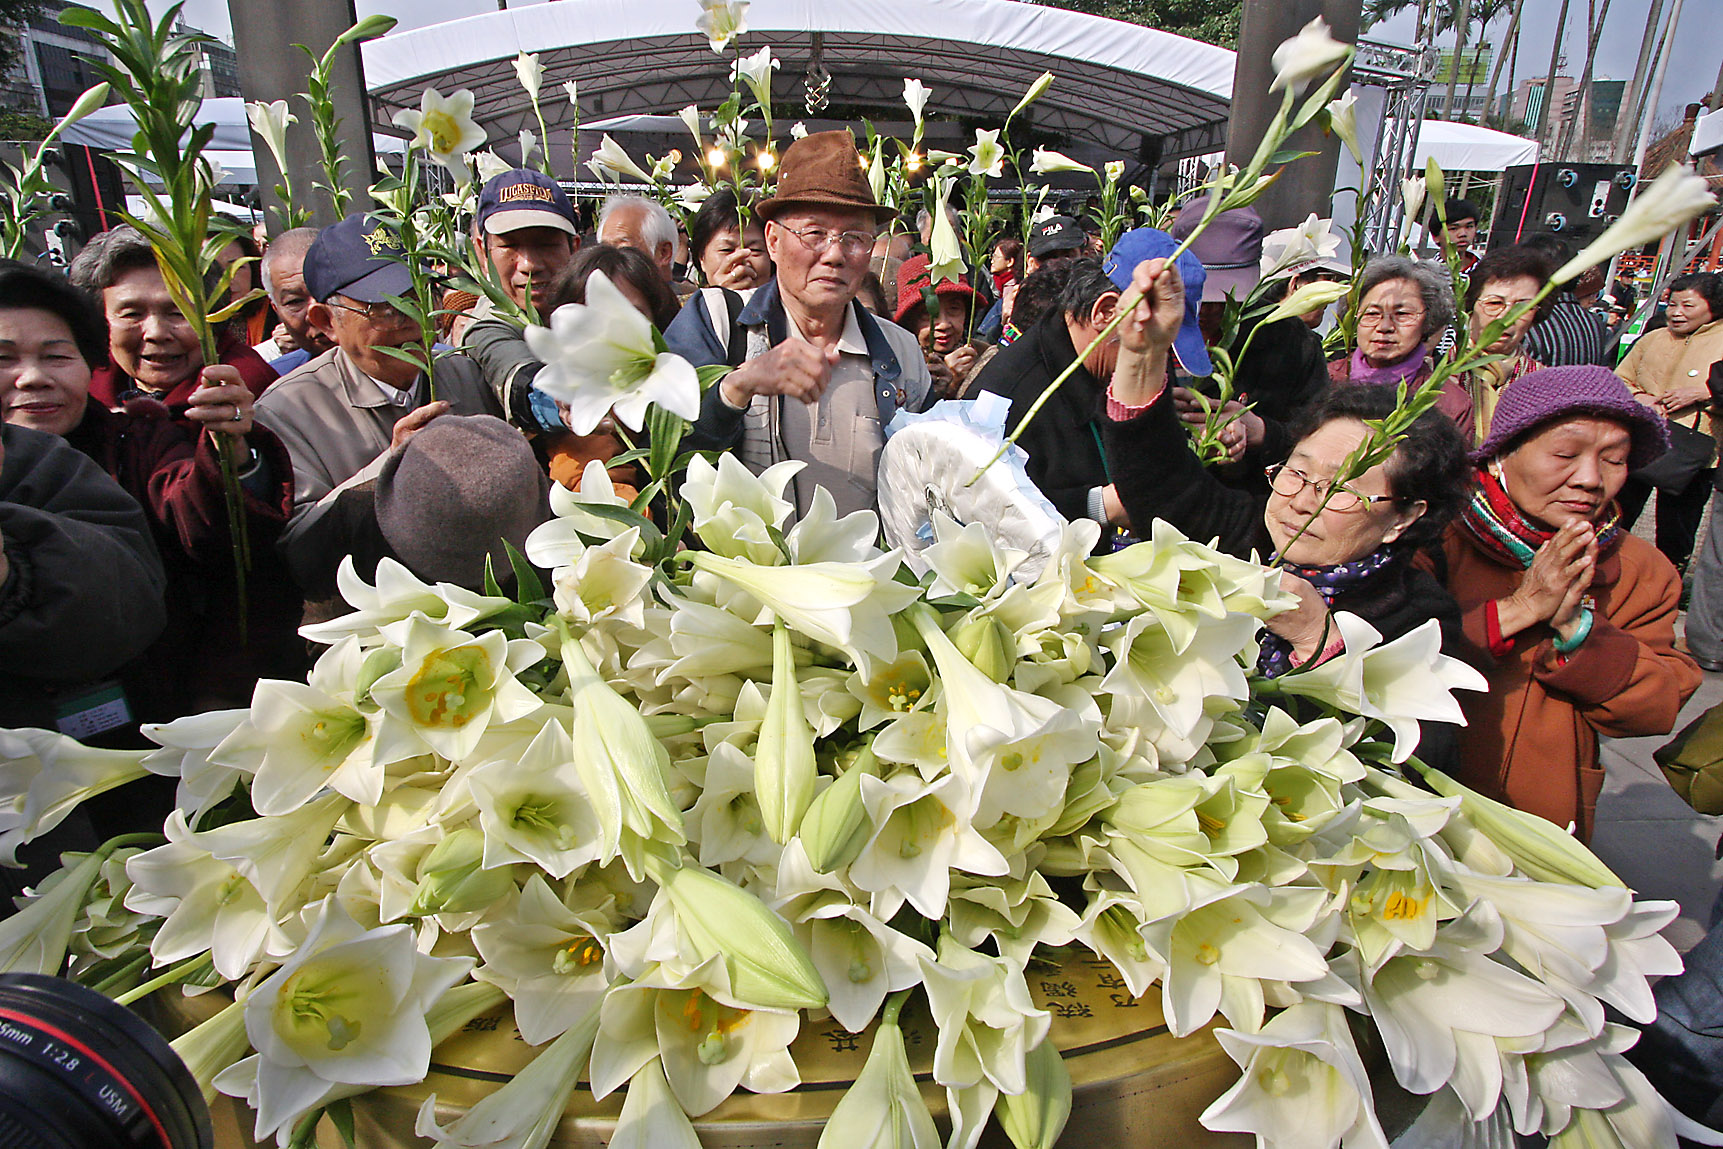 People place lilies at 228 Memorial Park to commemorate the victims of the 